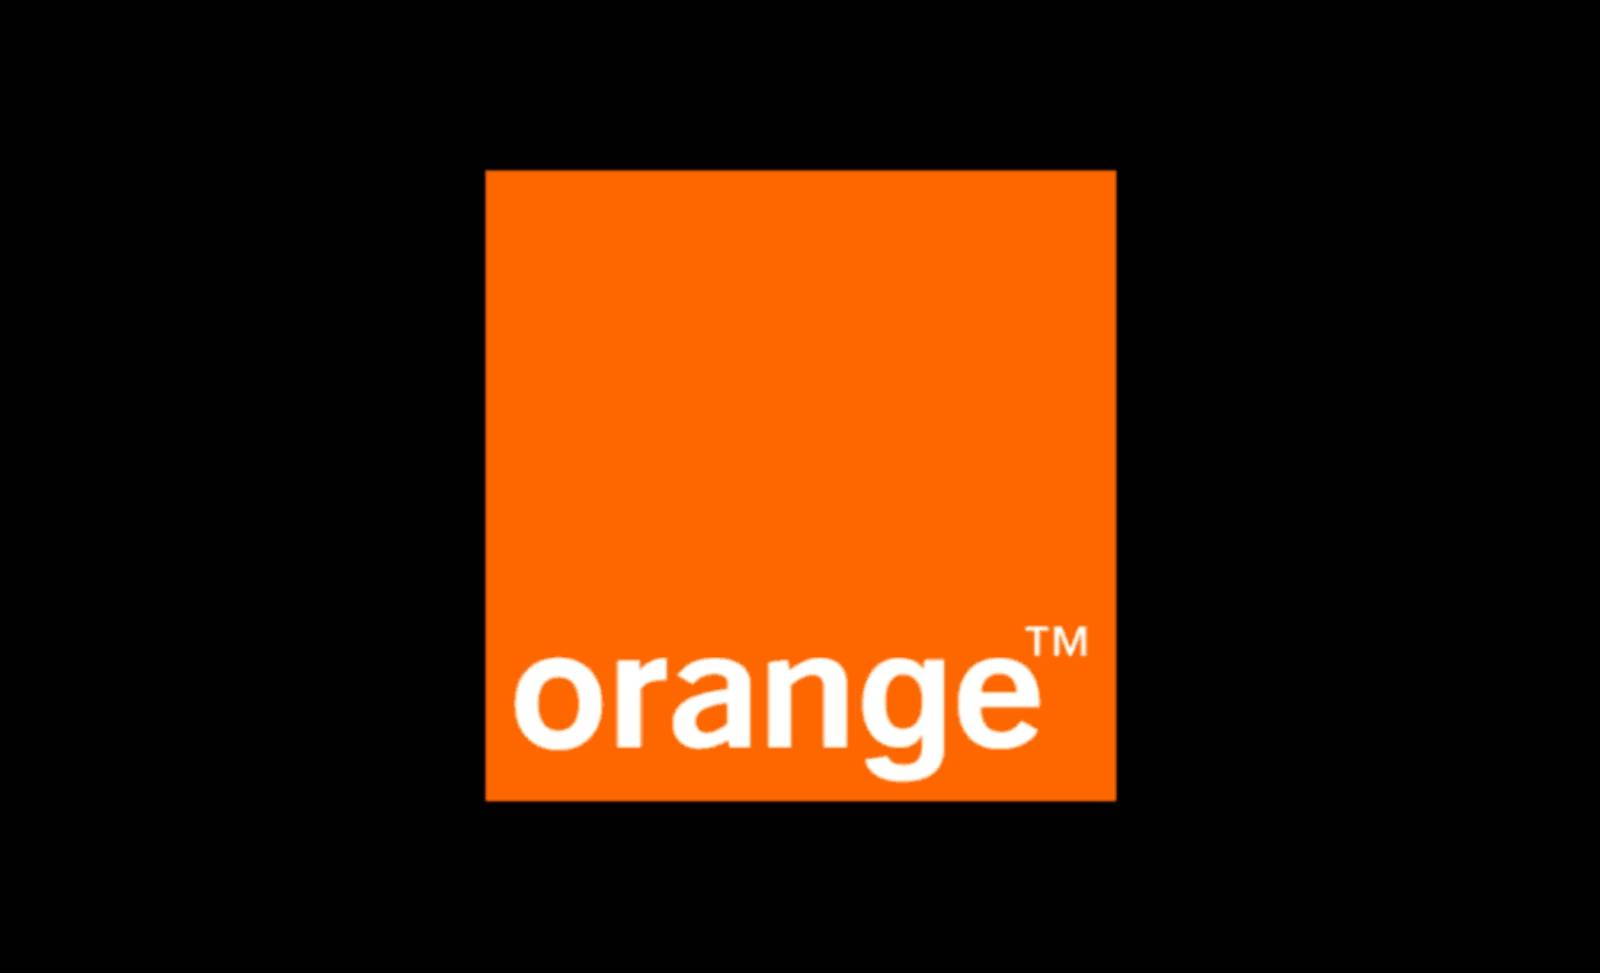 orange probleme cumpara telekom